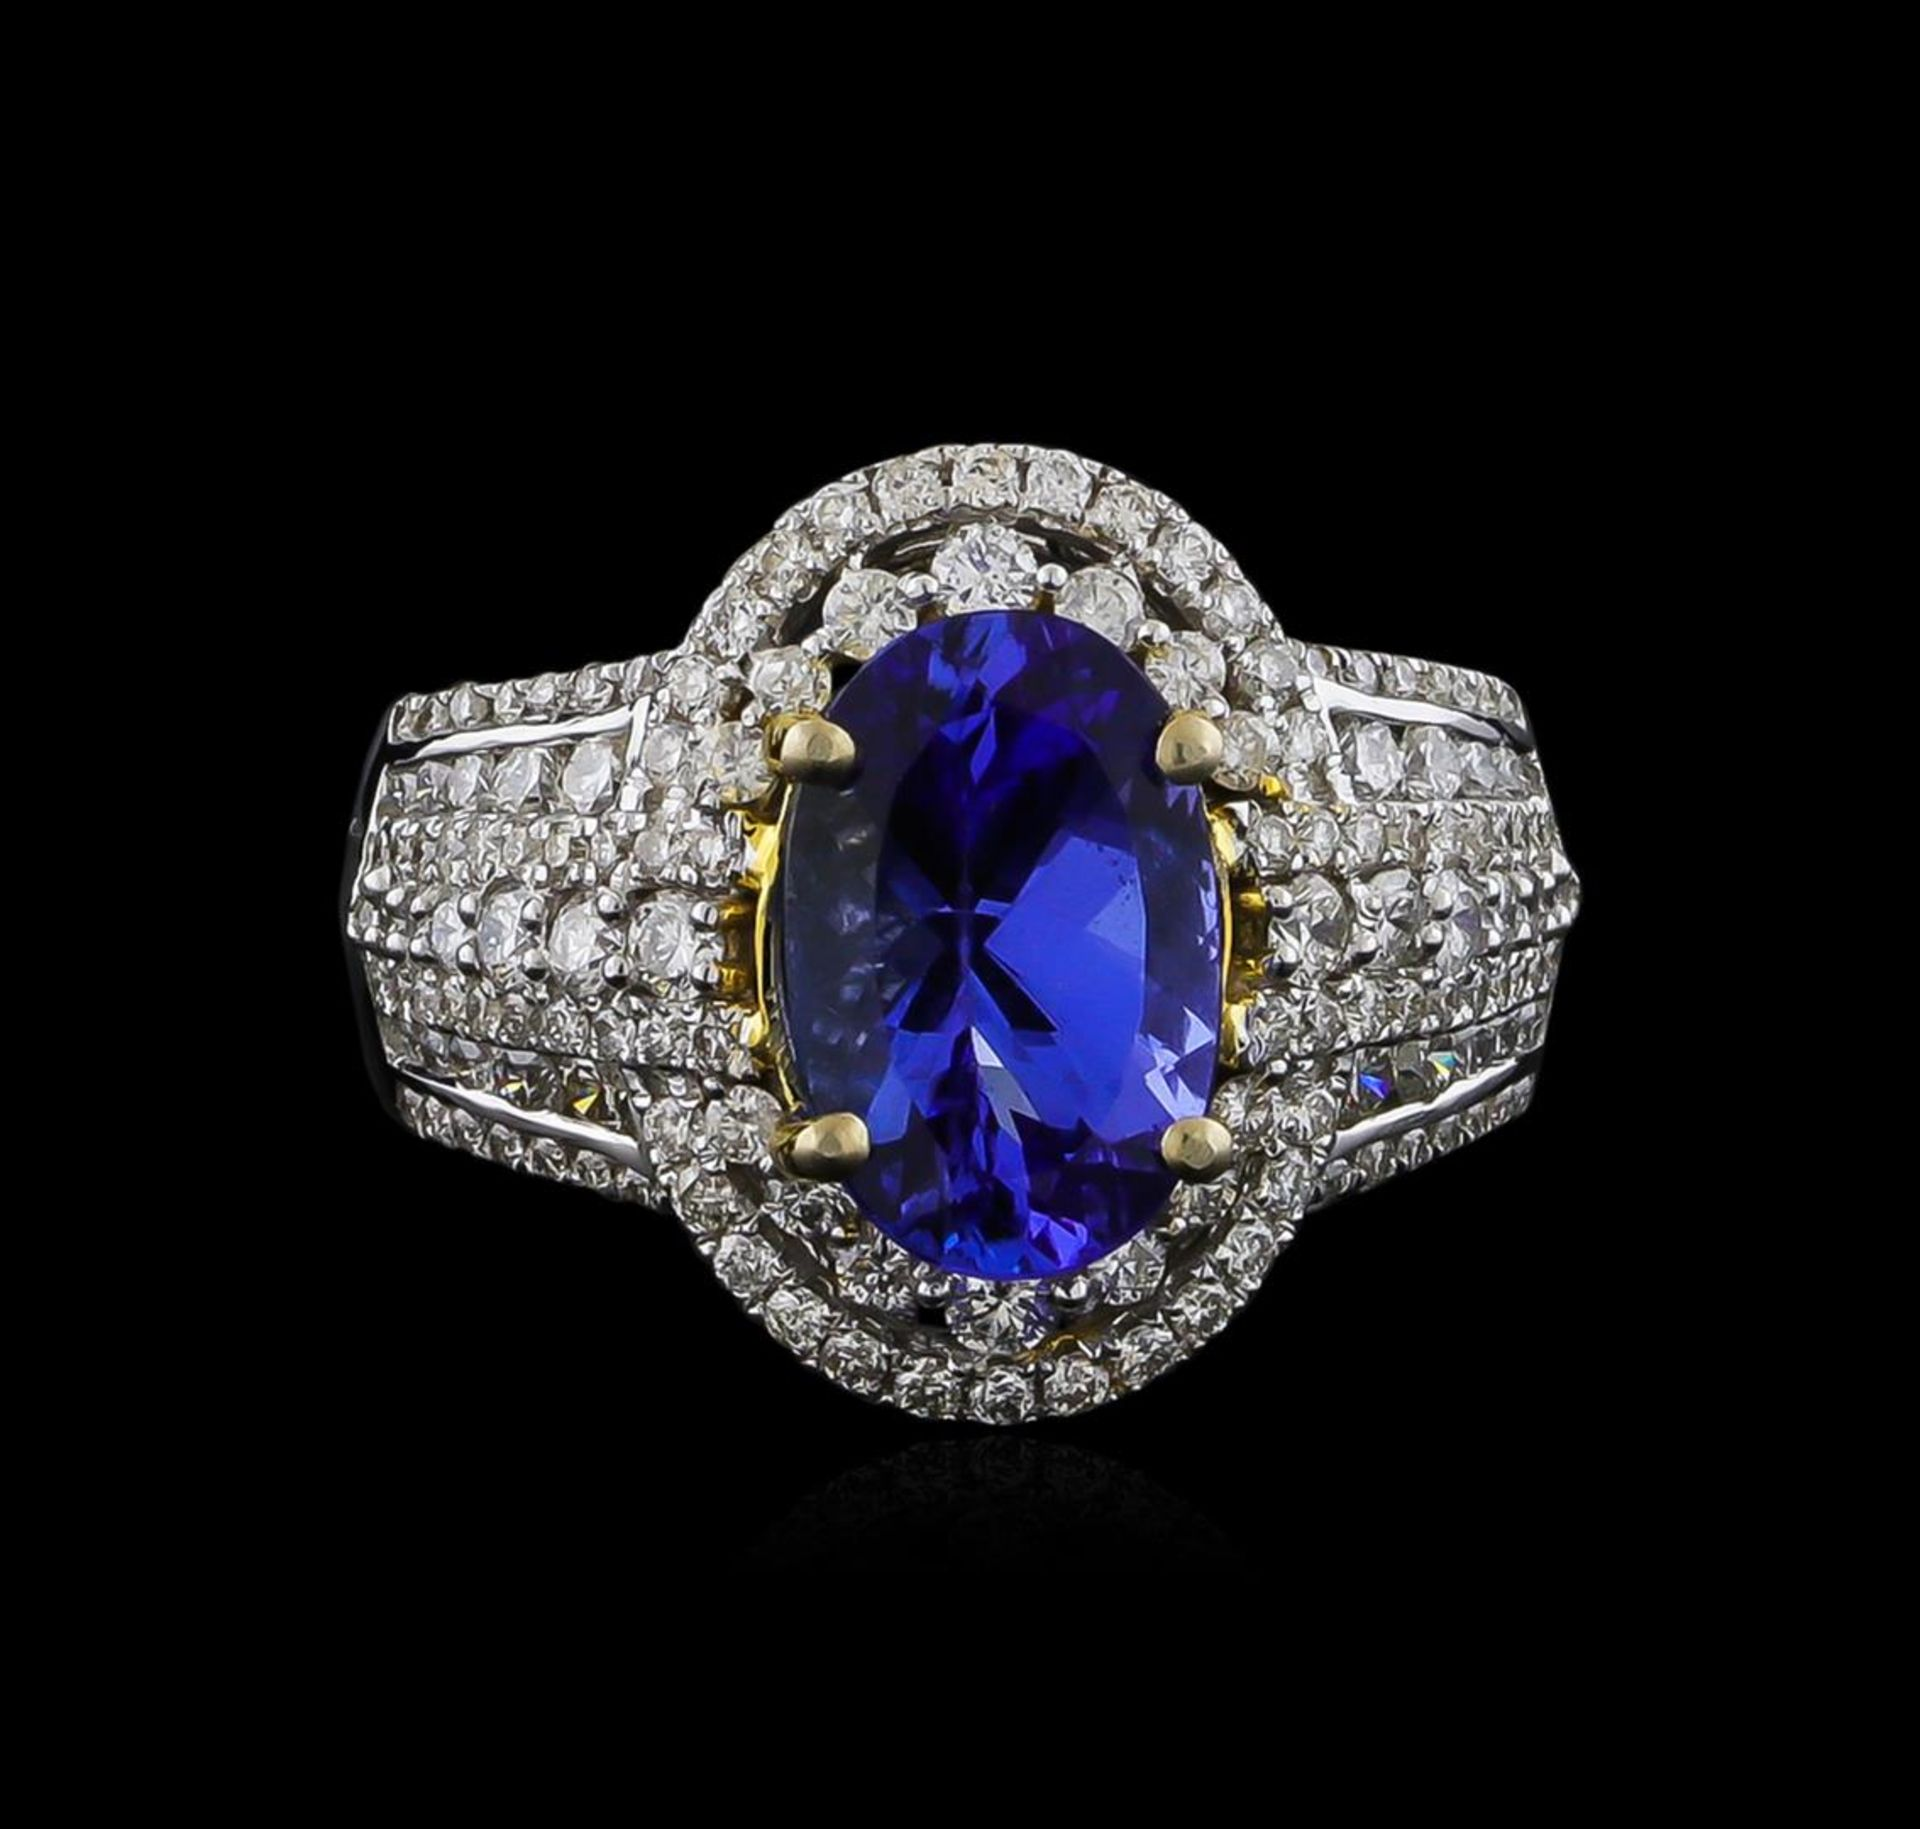 14KT Two-Tone Gold 4.12 ctw Tanzanite and Diamond Ring - Image 2 of 5